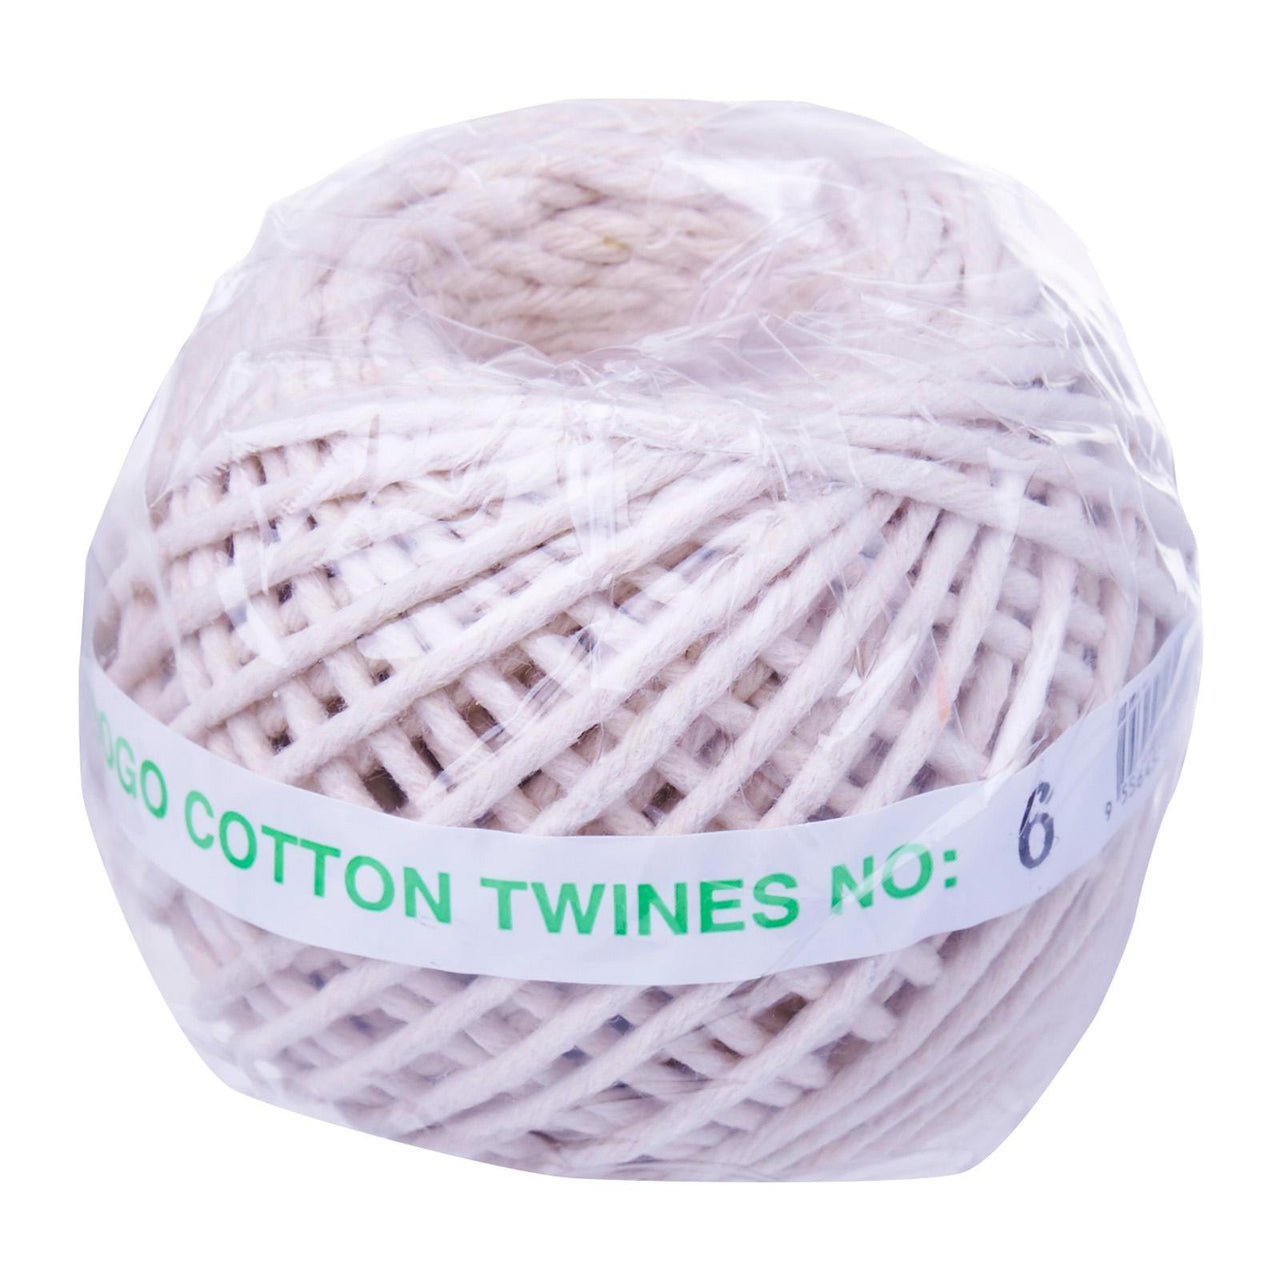 Yosogo Cotton Twines